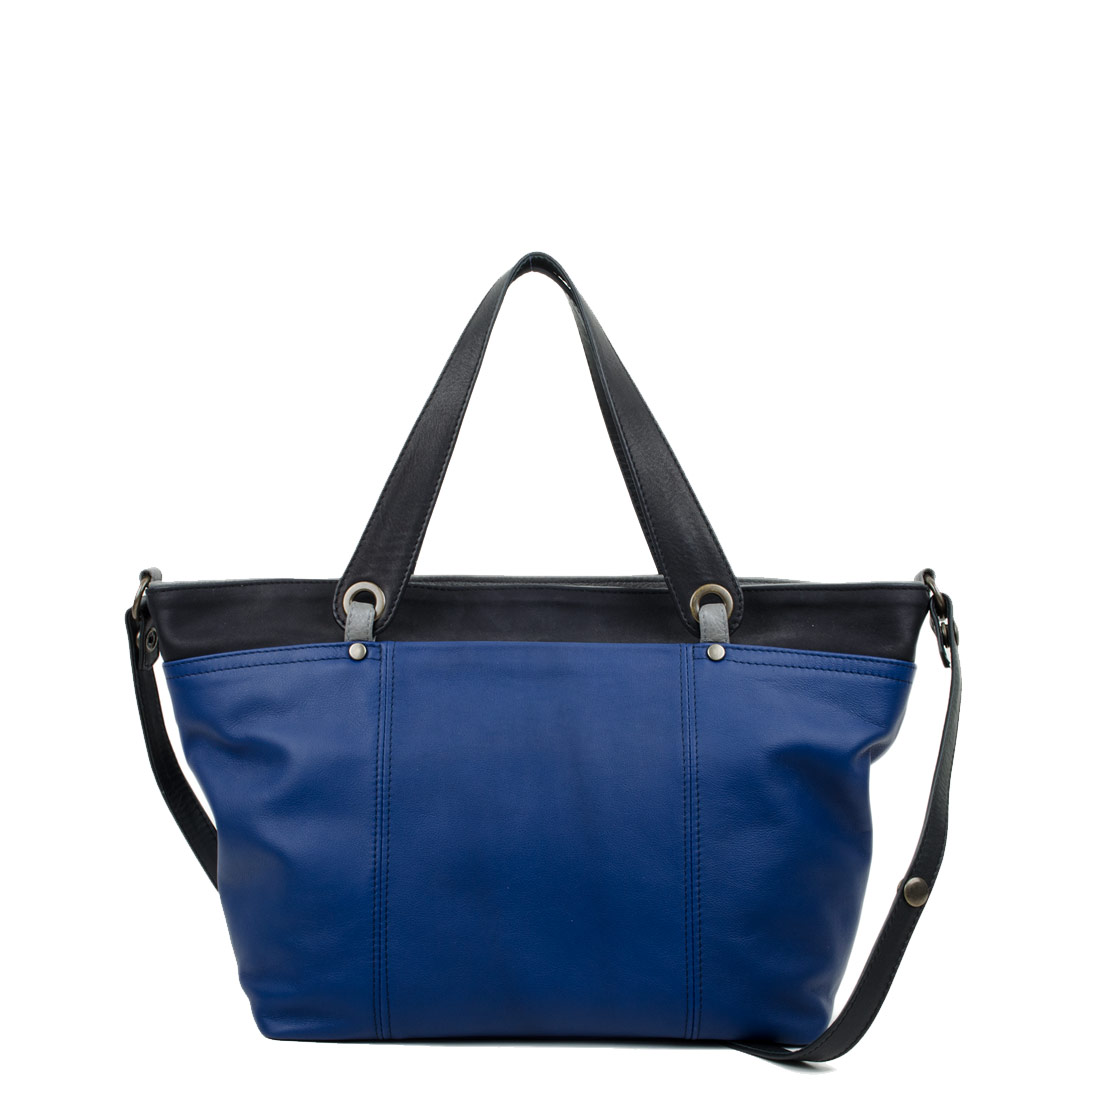 Lucy Midnight Blue with Black Leather Tote Bag